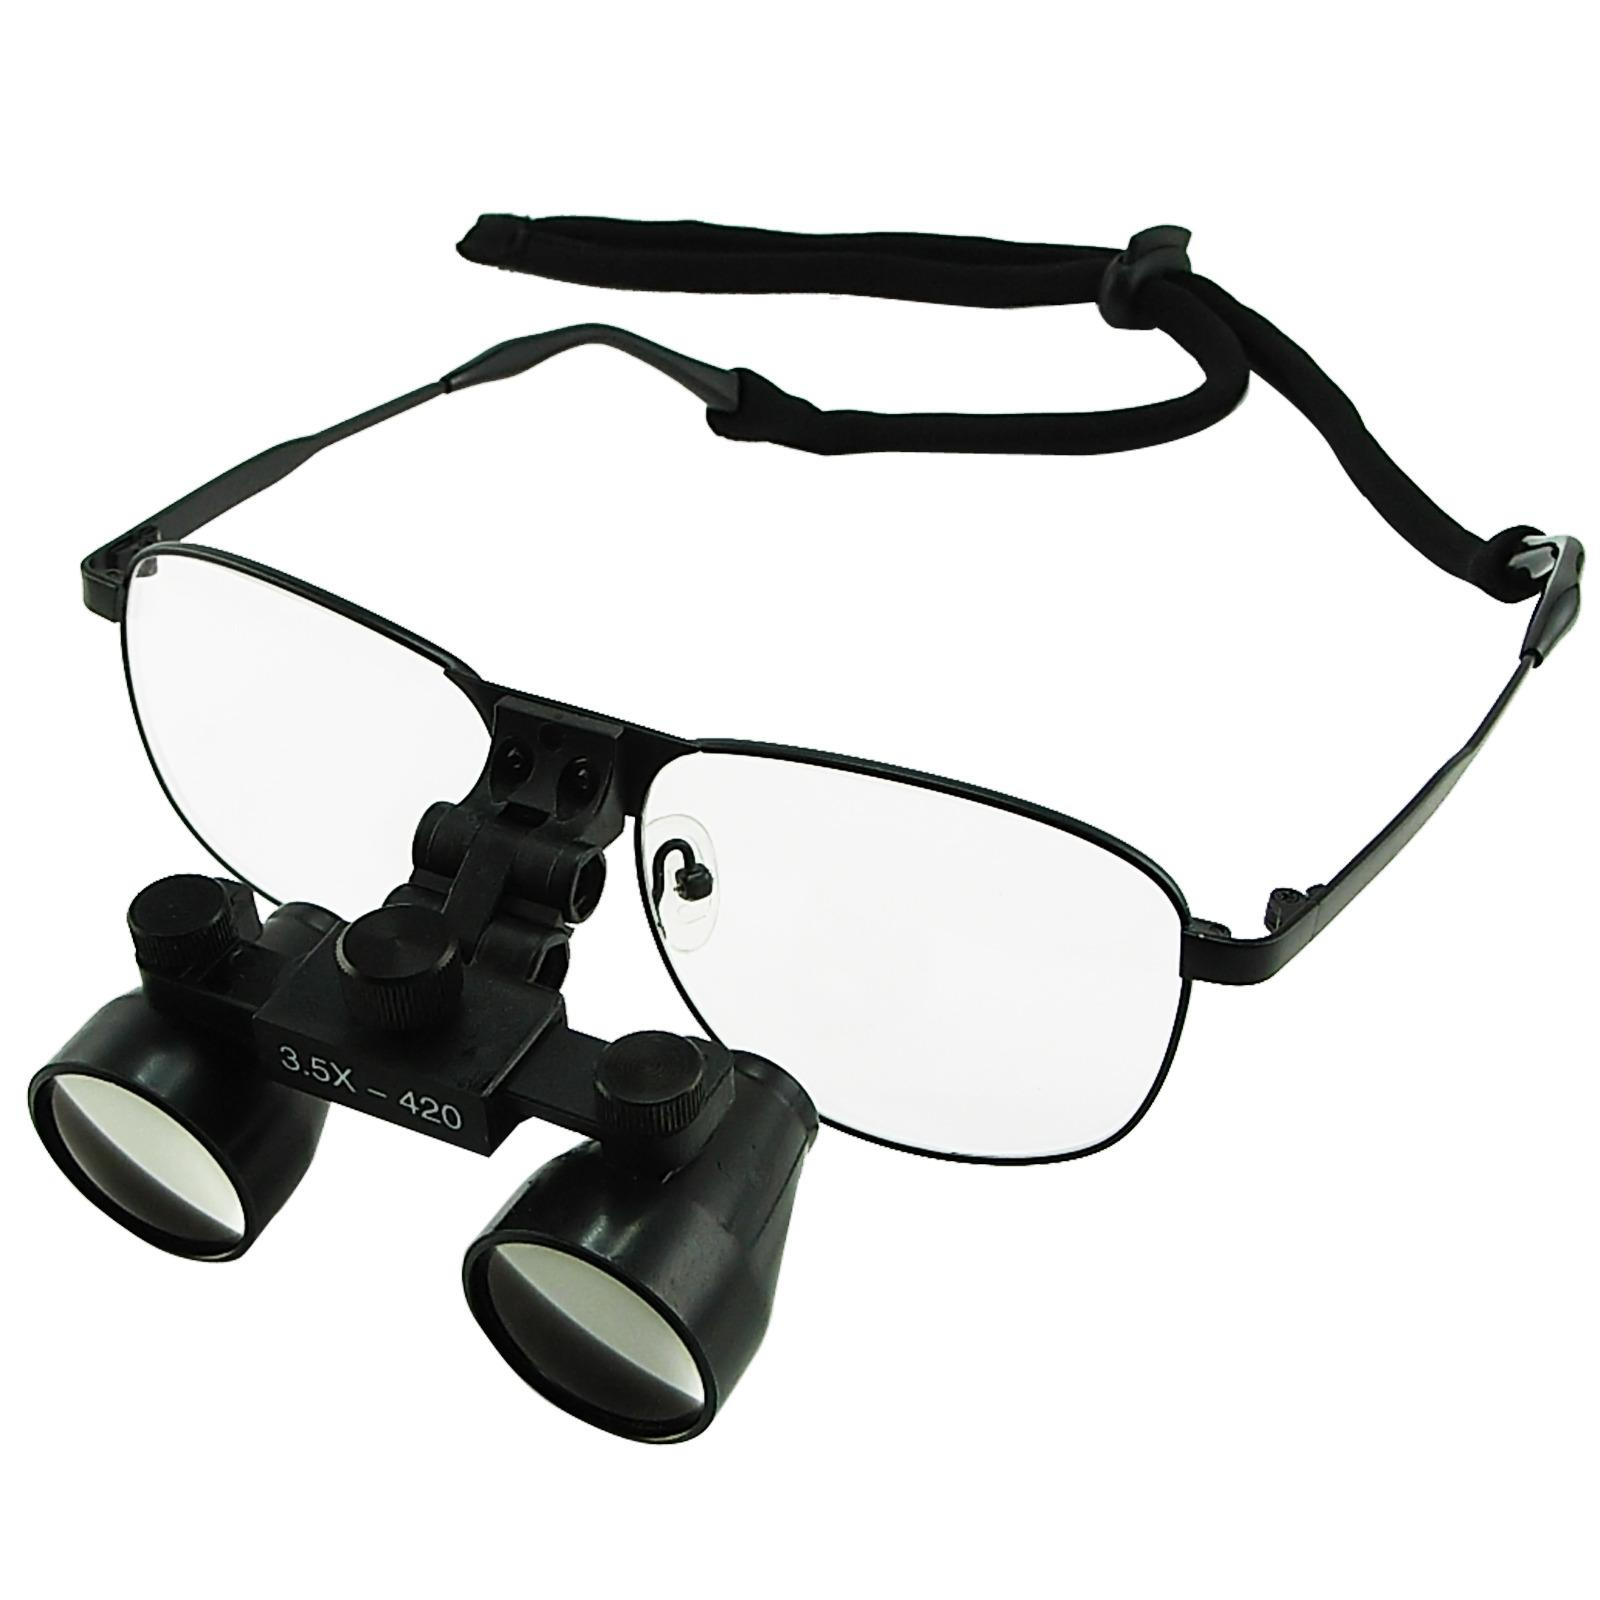 Price Comparison For Dl 035 Gain Express 3 5X Magnification Dental Loupes Galilean Style Titanium Frame Dental Surgical Medical Binocular 60Mm Field Of View 55Mm Depth Of Field 420Mm Working Distance Flip Up Function Flexible Optical Glass Loupe Dentistry Intl